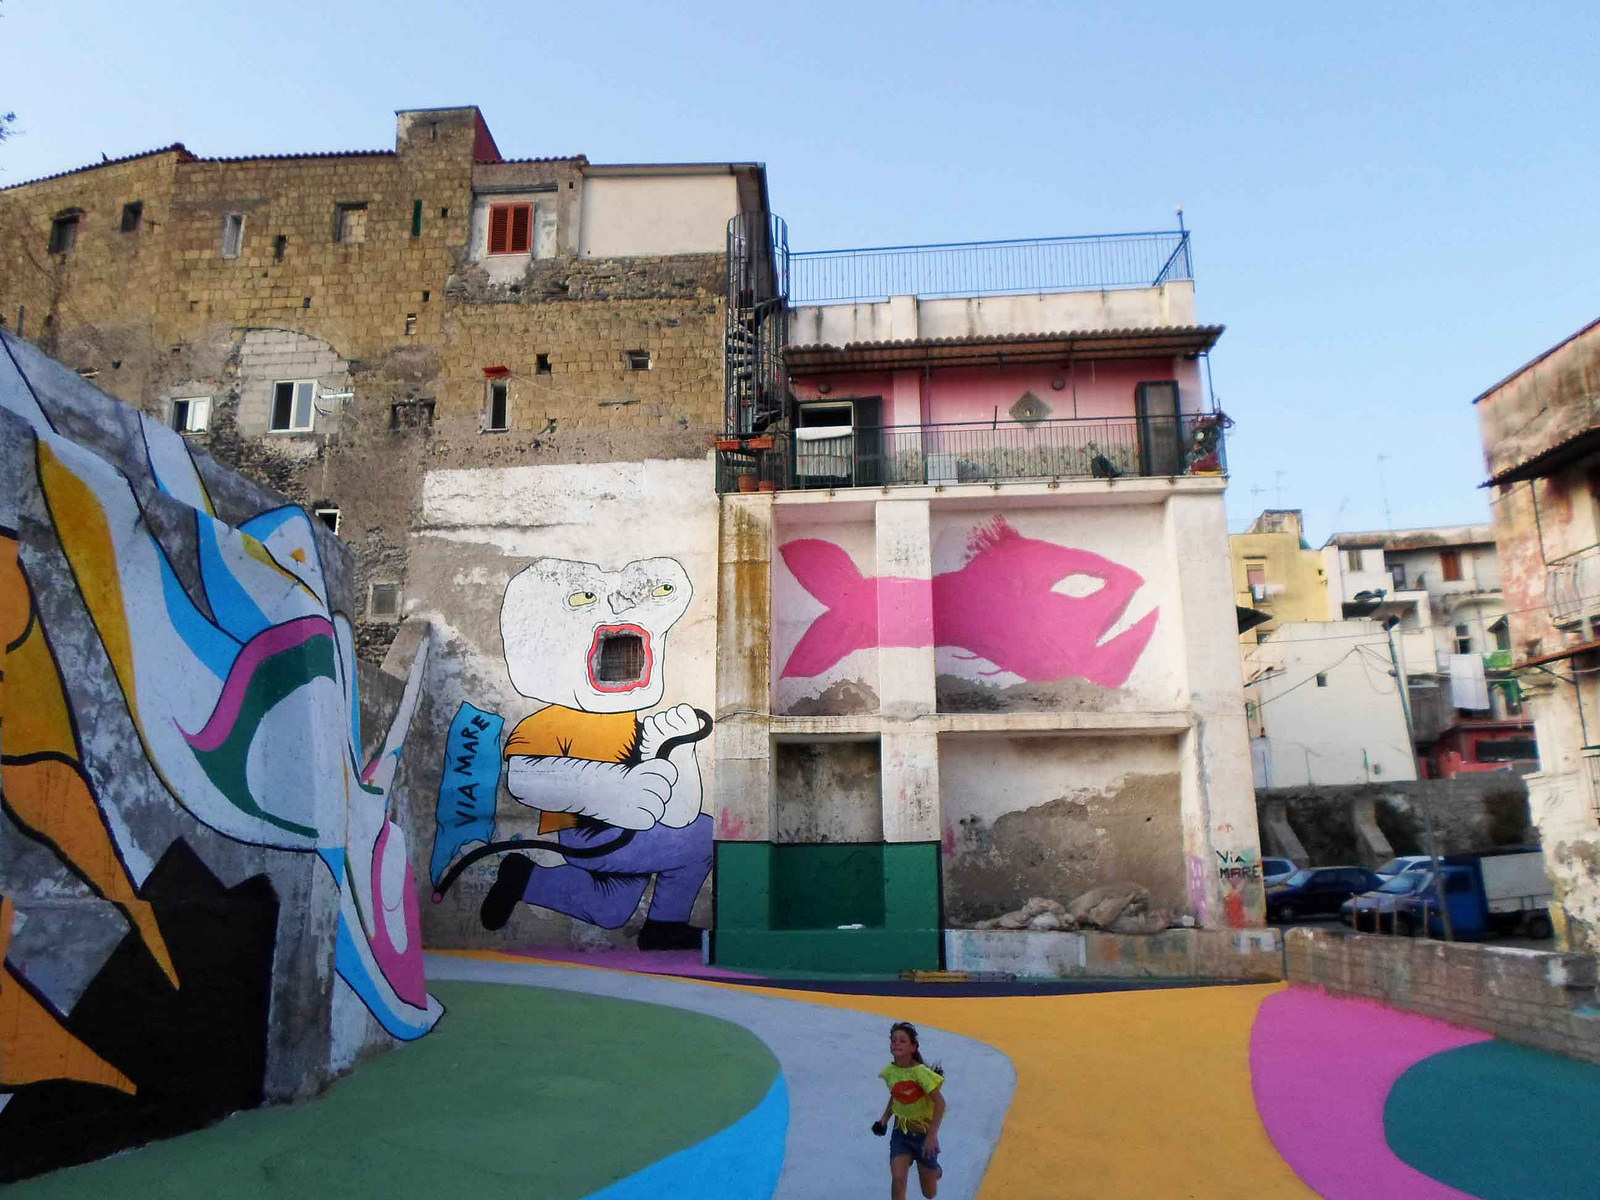 diego-miedo-new-murals-in-napoli-and-ercolano-05